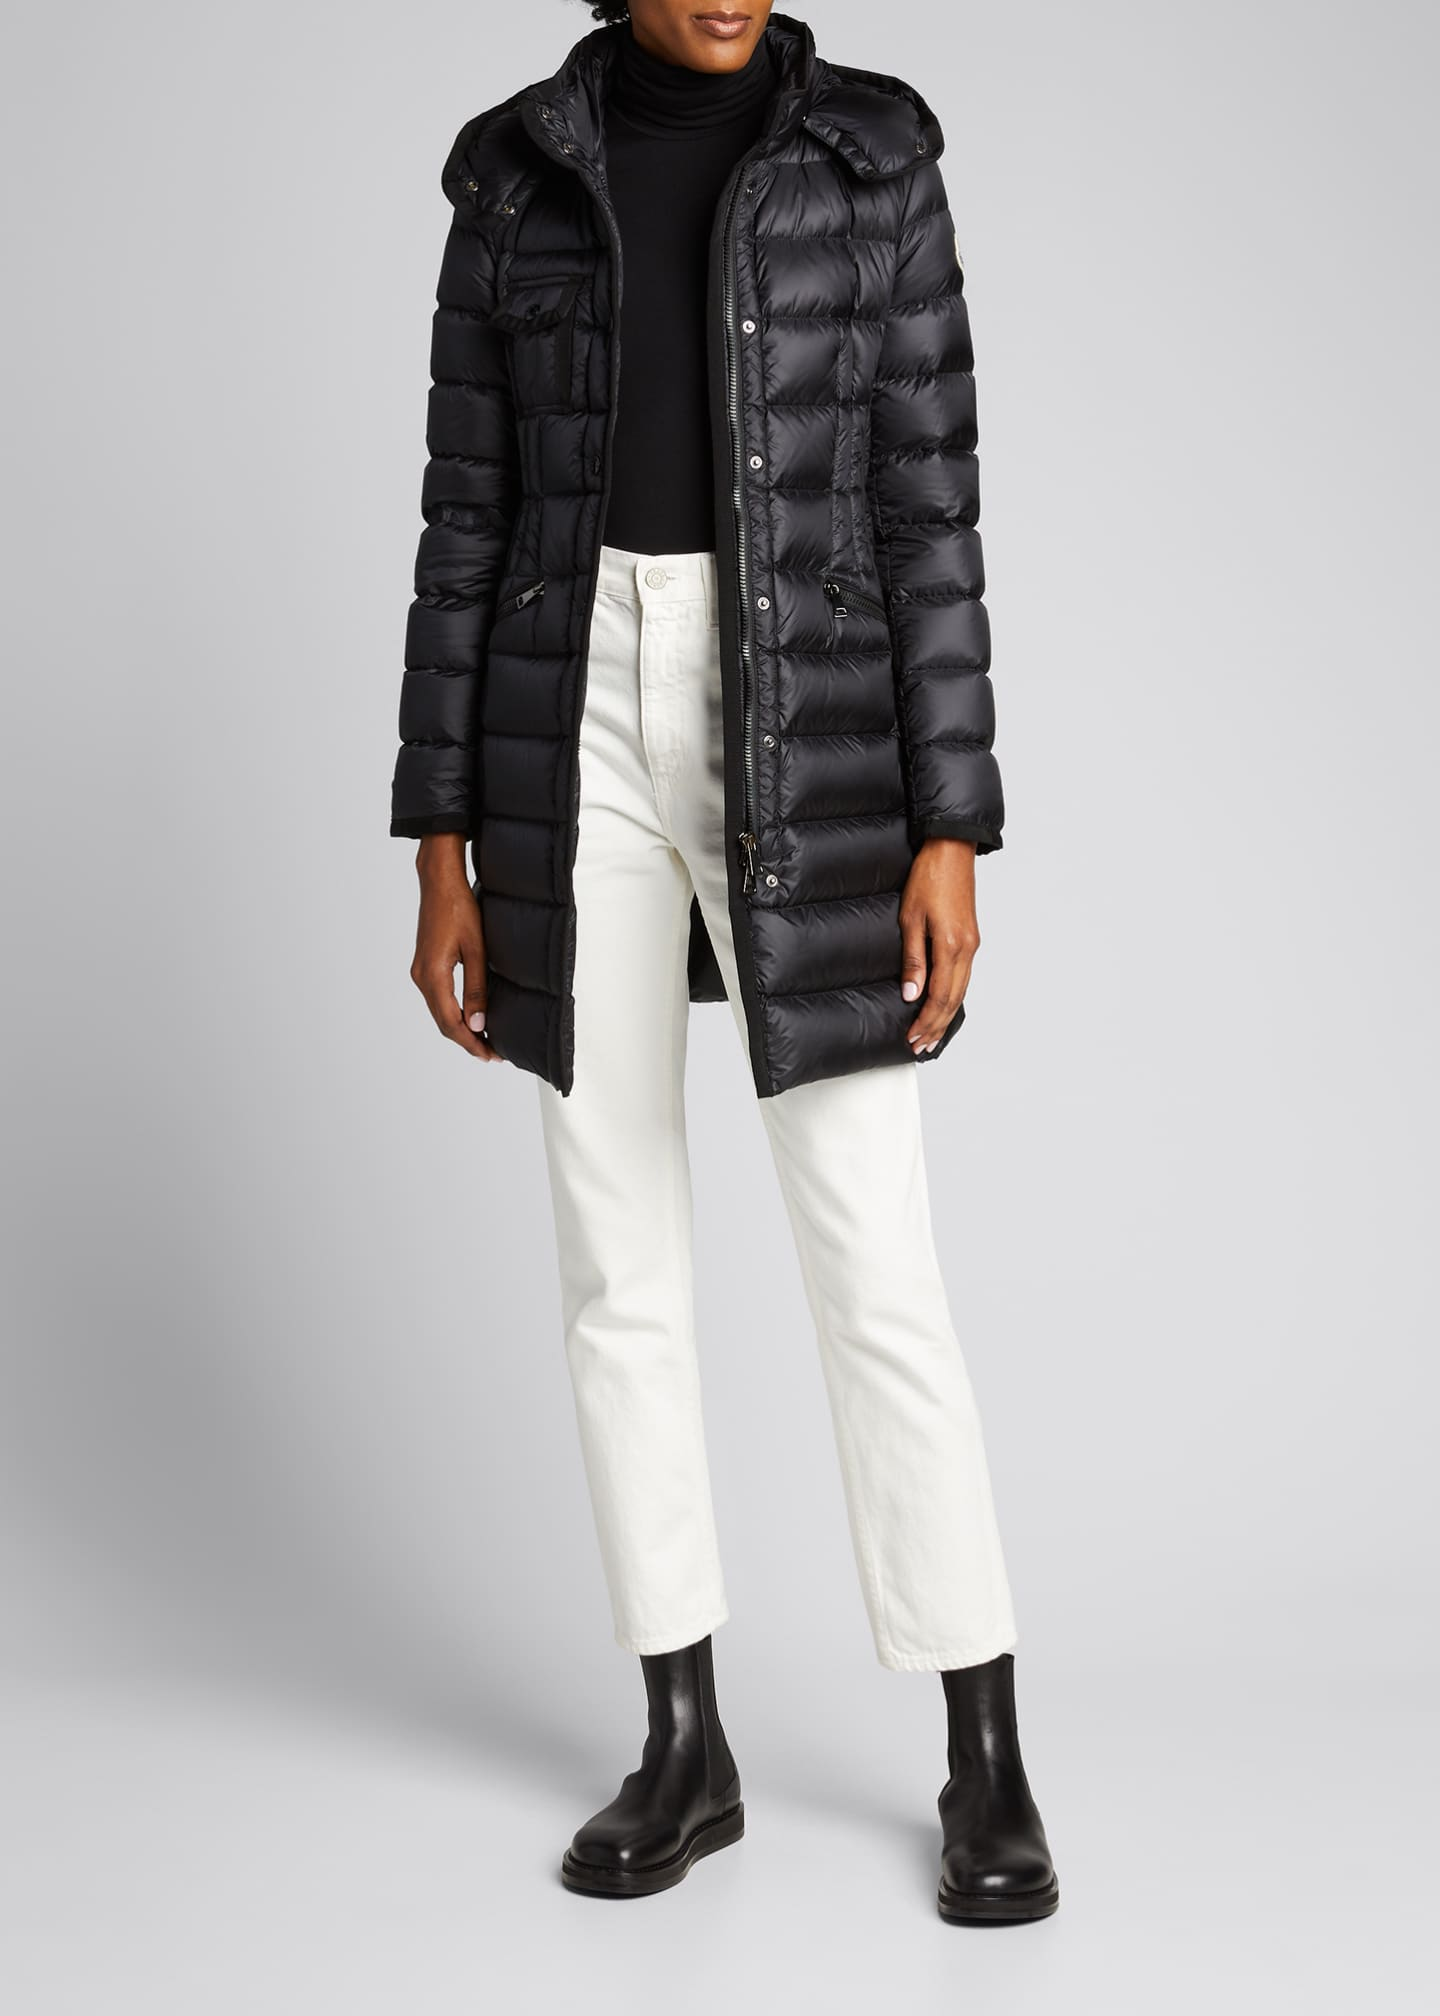 Image 1 of 1: Hermine Hooded Long Puffer Coat